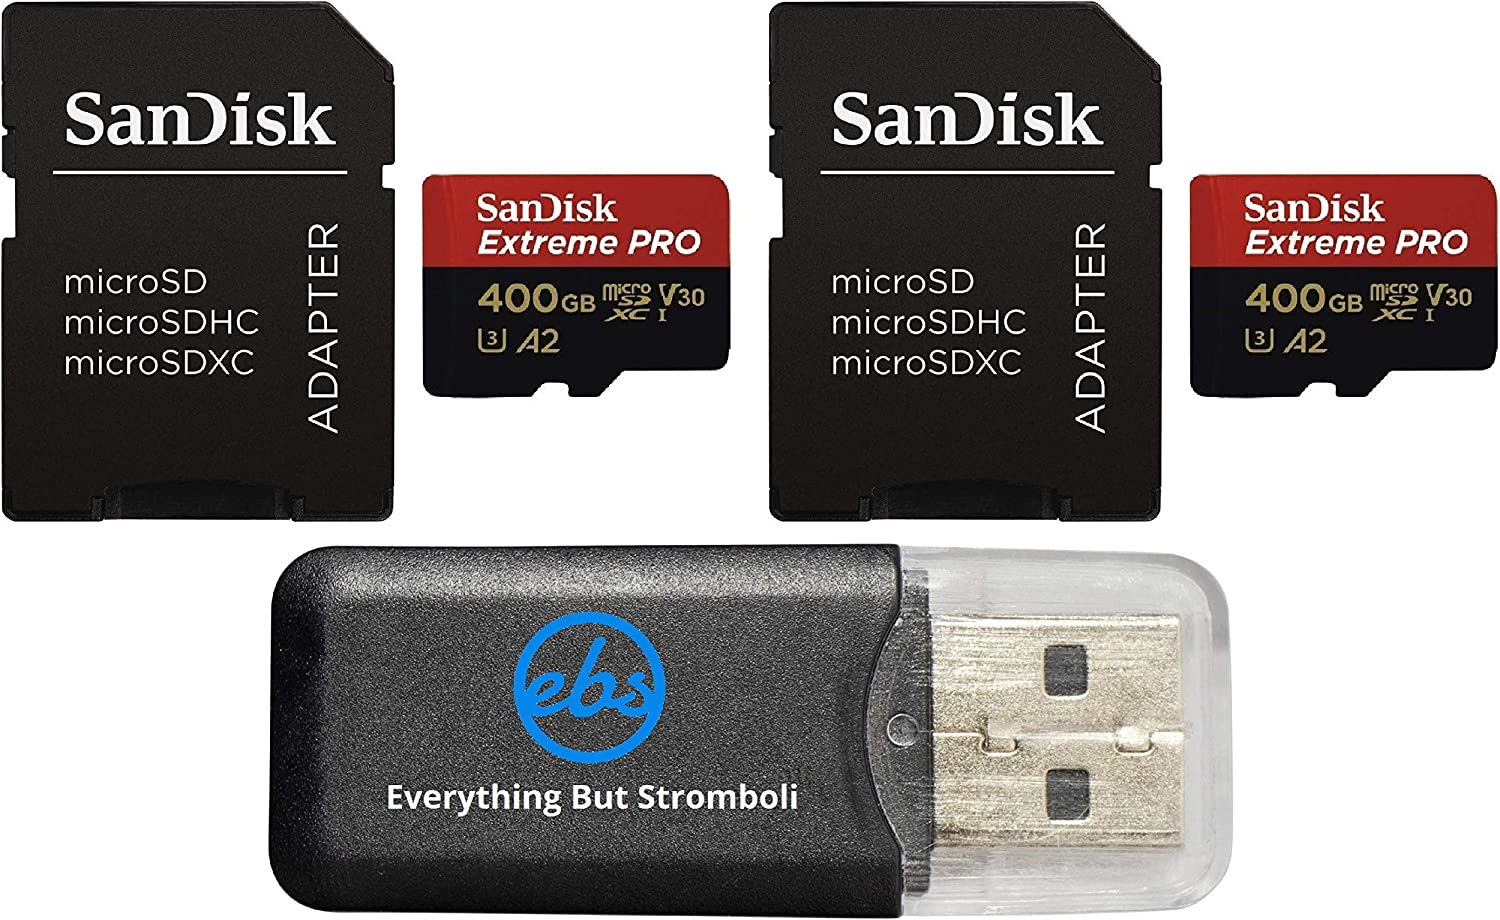 2 Pack SDSDQXCZ-400G-GN6MA Everything But Stromboli MicroSD Reader SanDisk 400GB Micro SDXC Extreme Pro Memory Card Max 360 Cam U3 V30 4K Class 10 1 Works with GoPro Hero 8 Black Bundle with